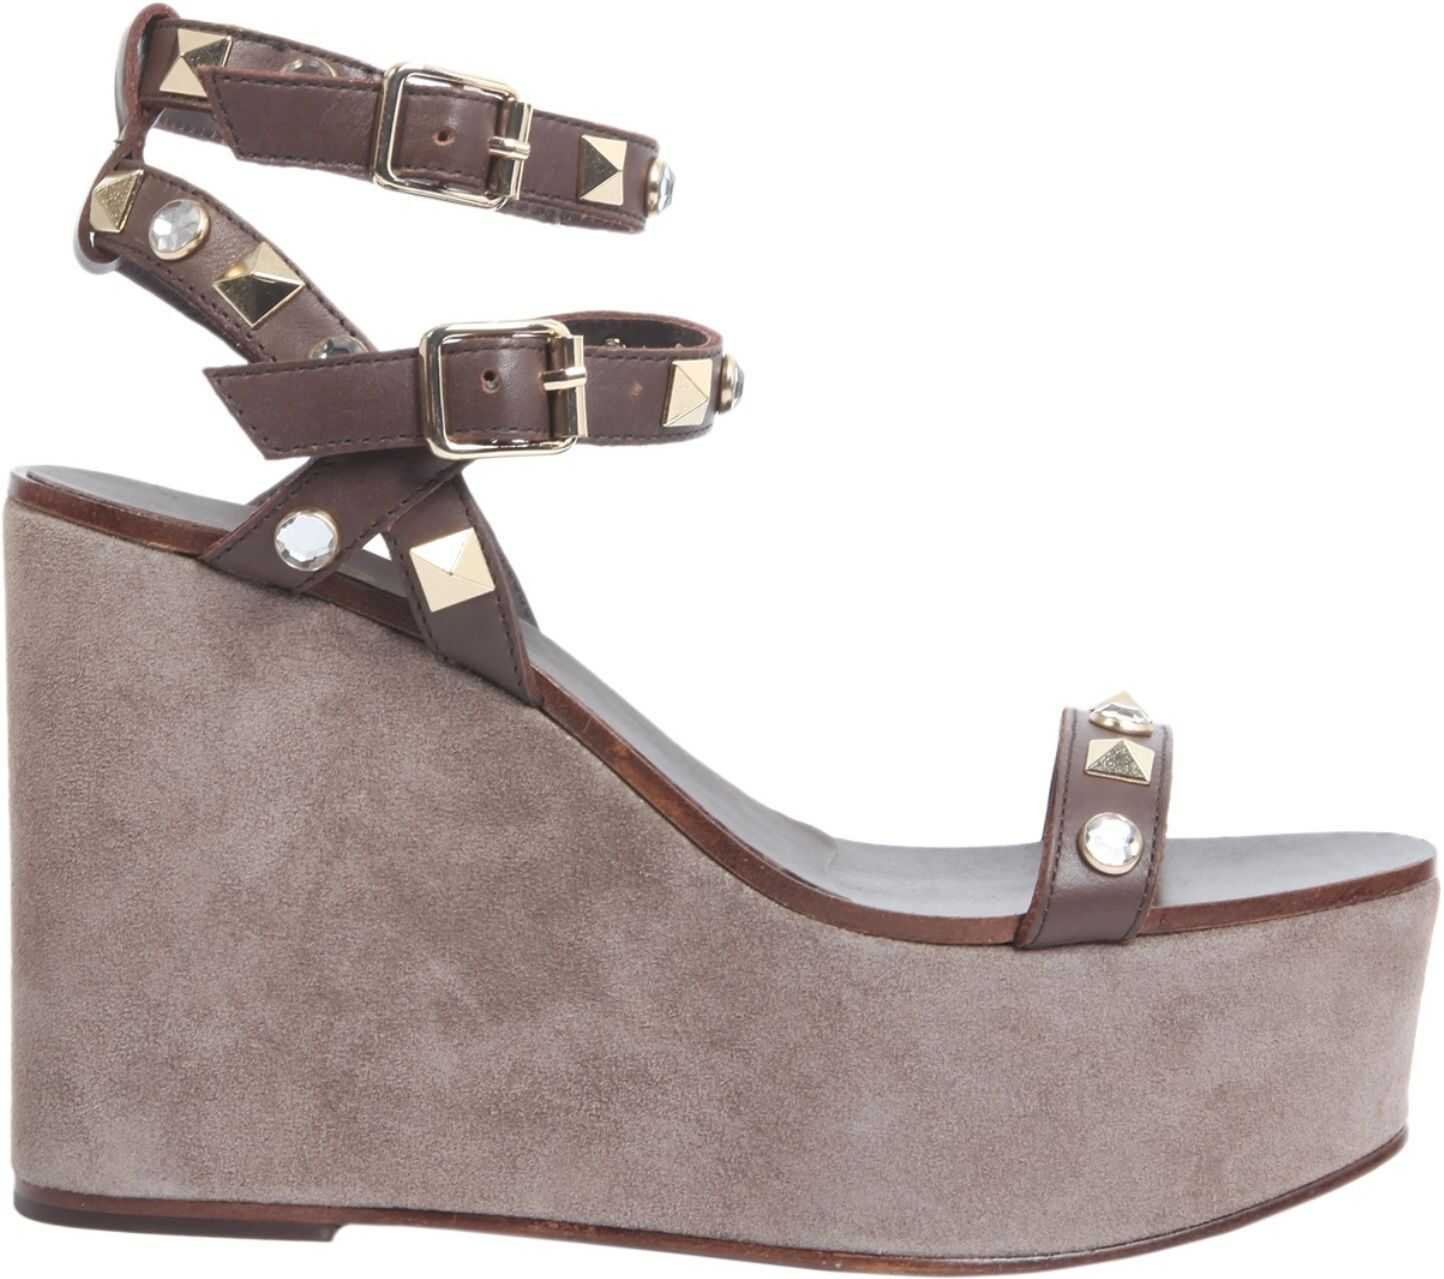 ASH Touch Wedge Sandals TOUCH01_PELLESUEDETMORO BLACK imagine b-mall.ro